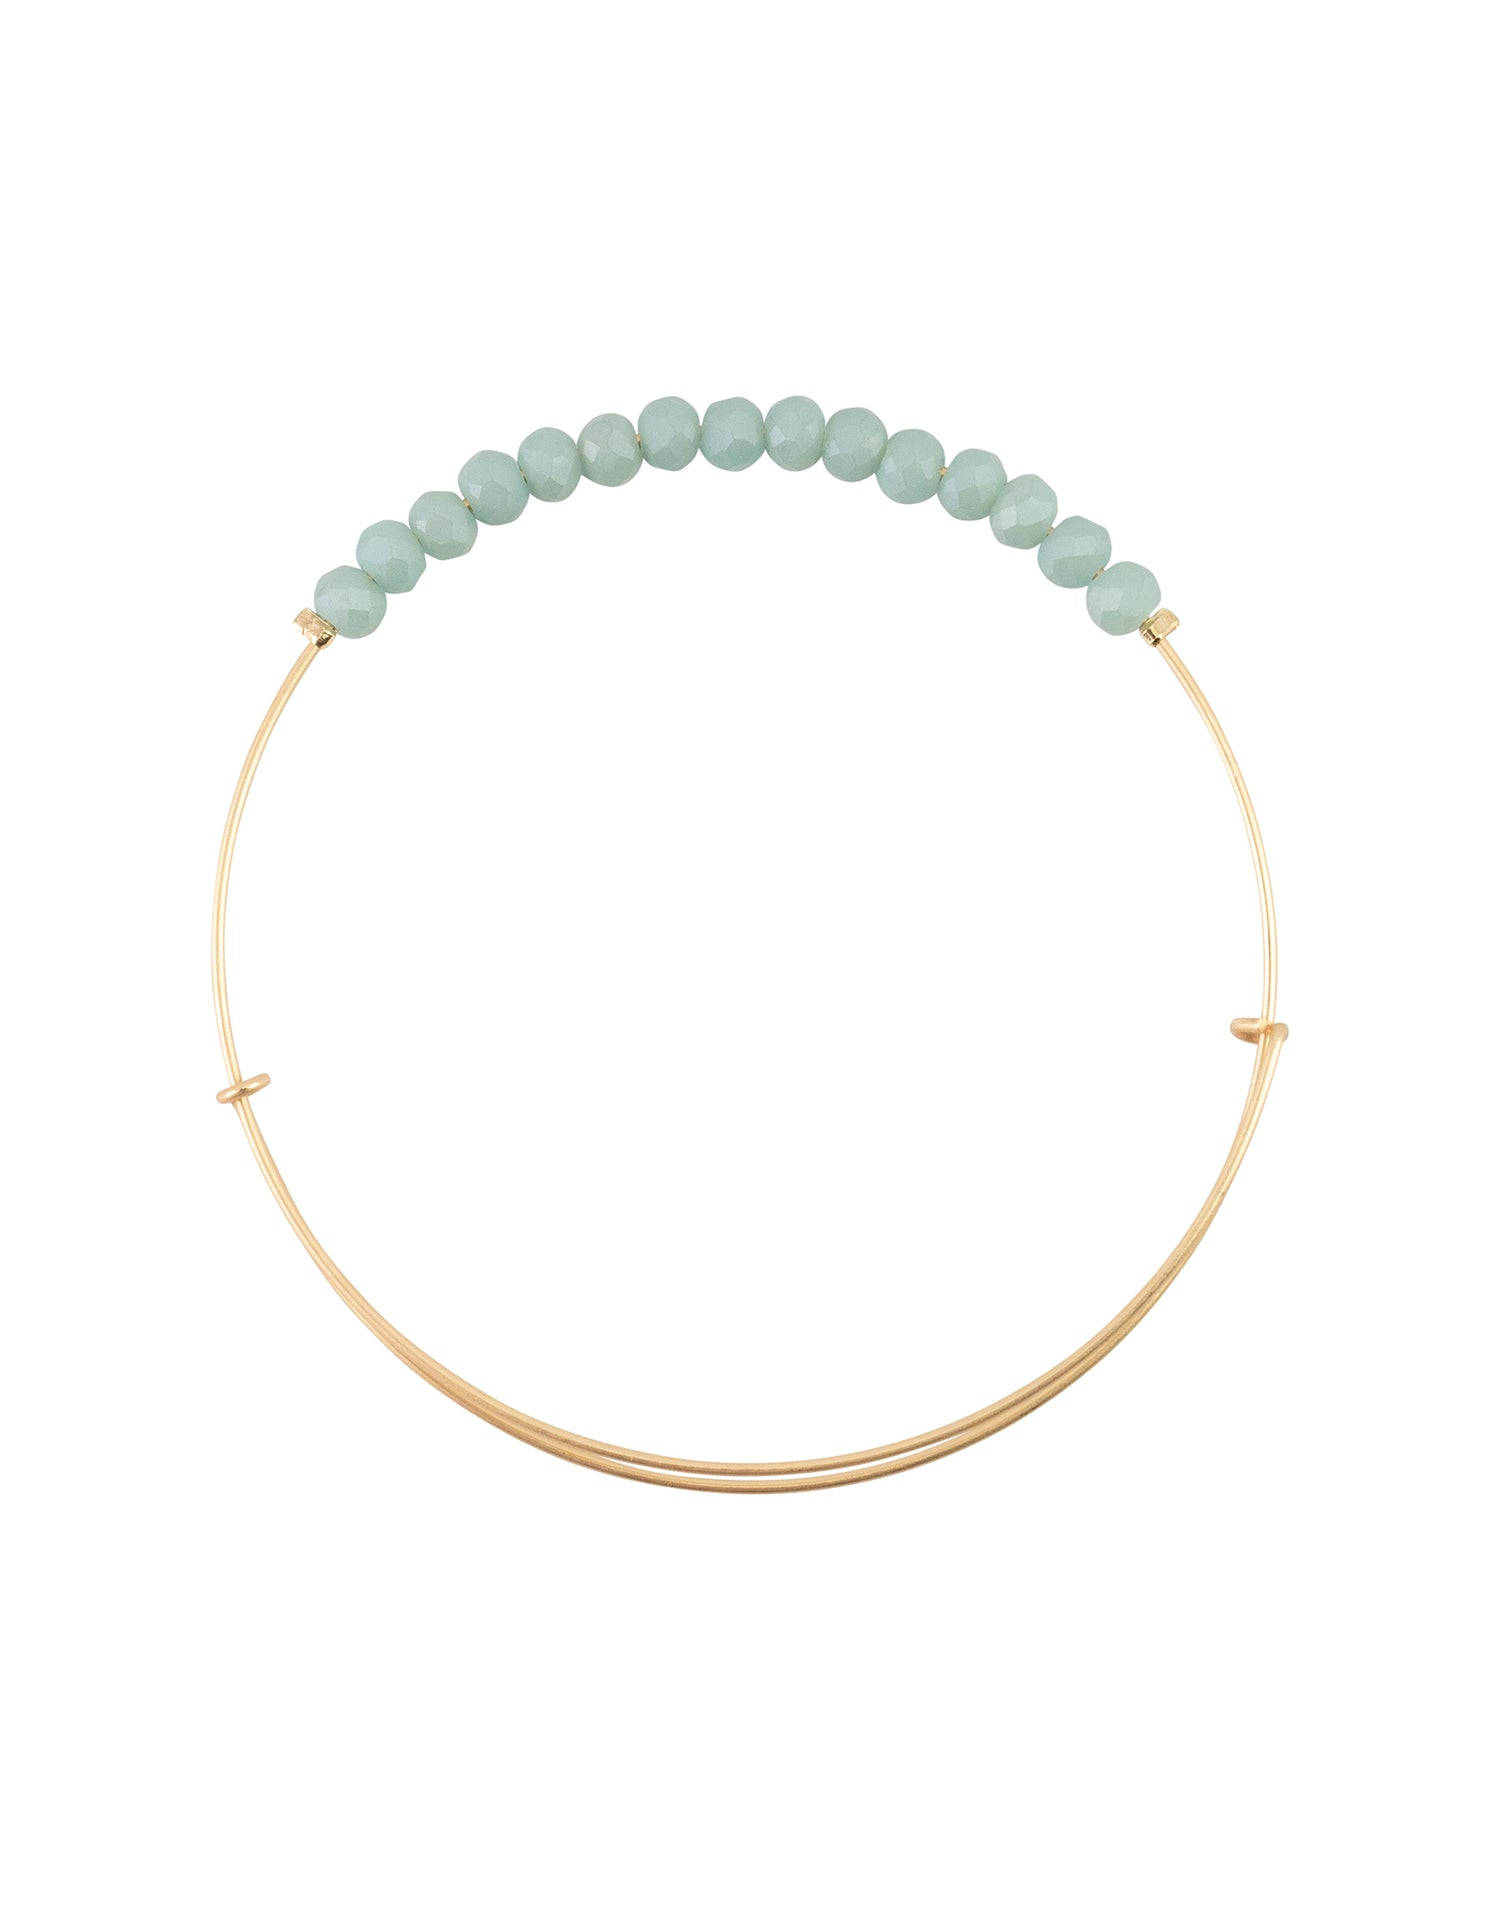 BOPS Crystal Bangle in Matte Turquoise - Product View